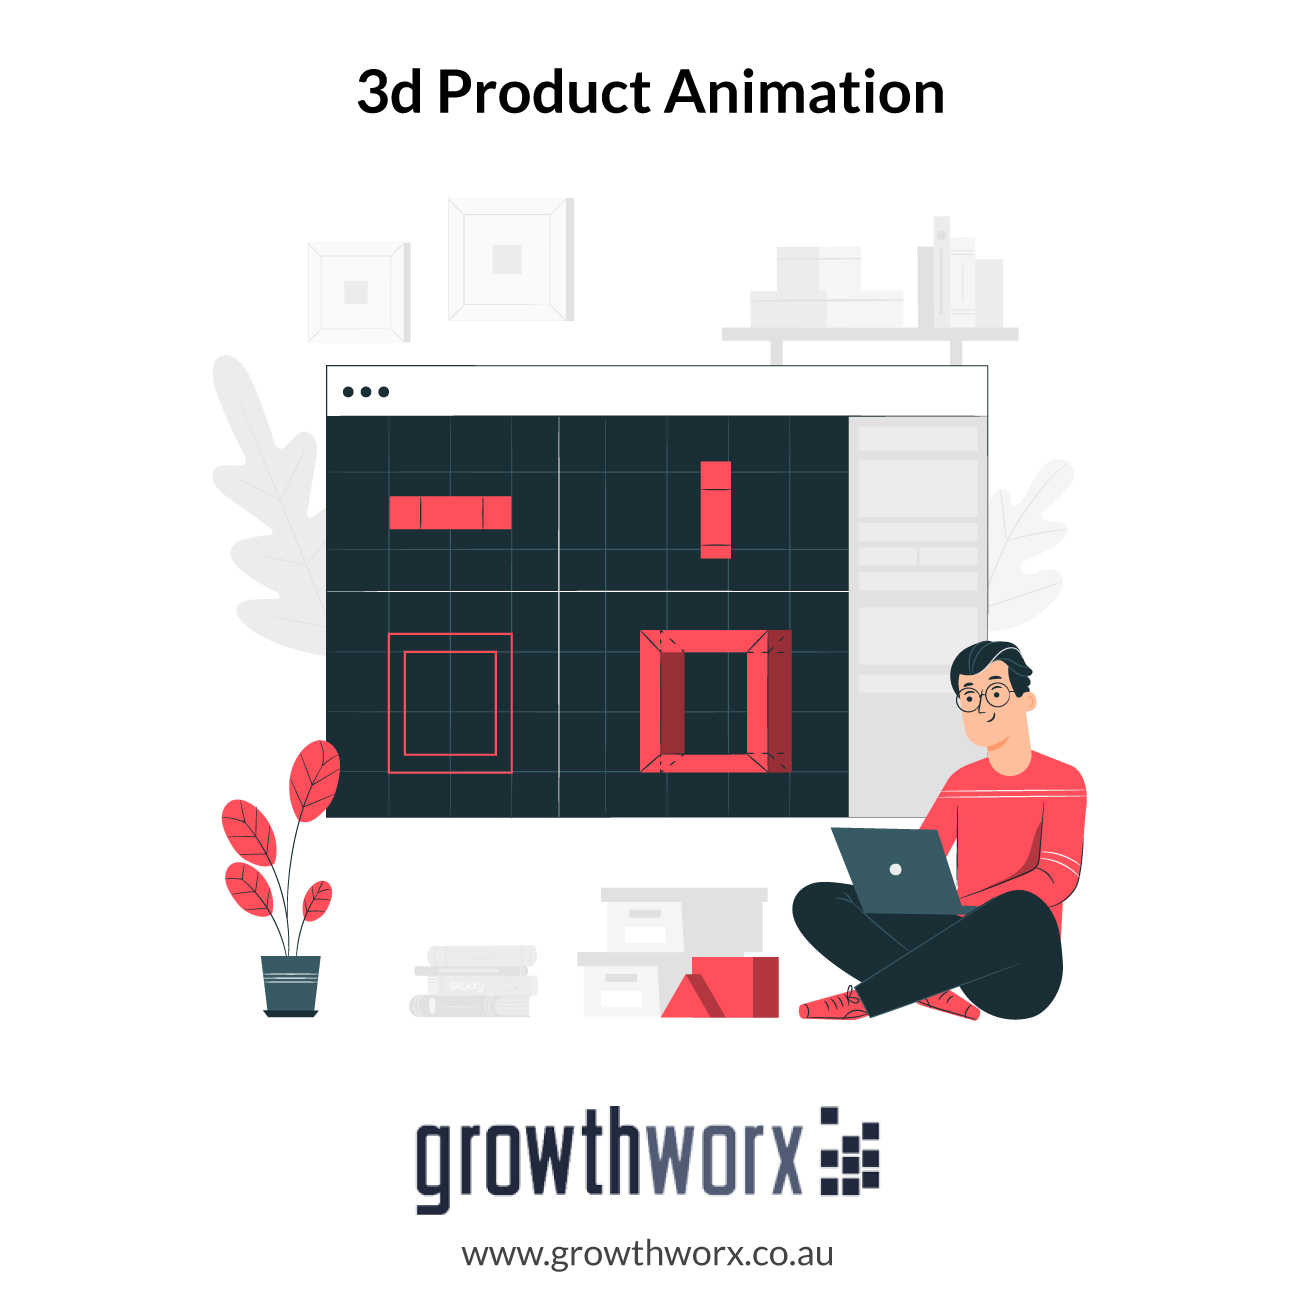 We will do 3d product animation 1